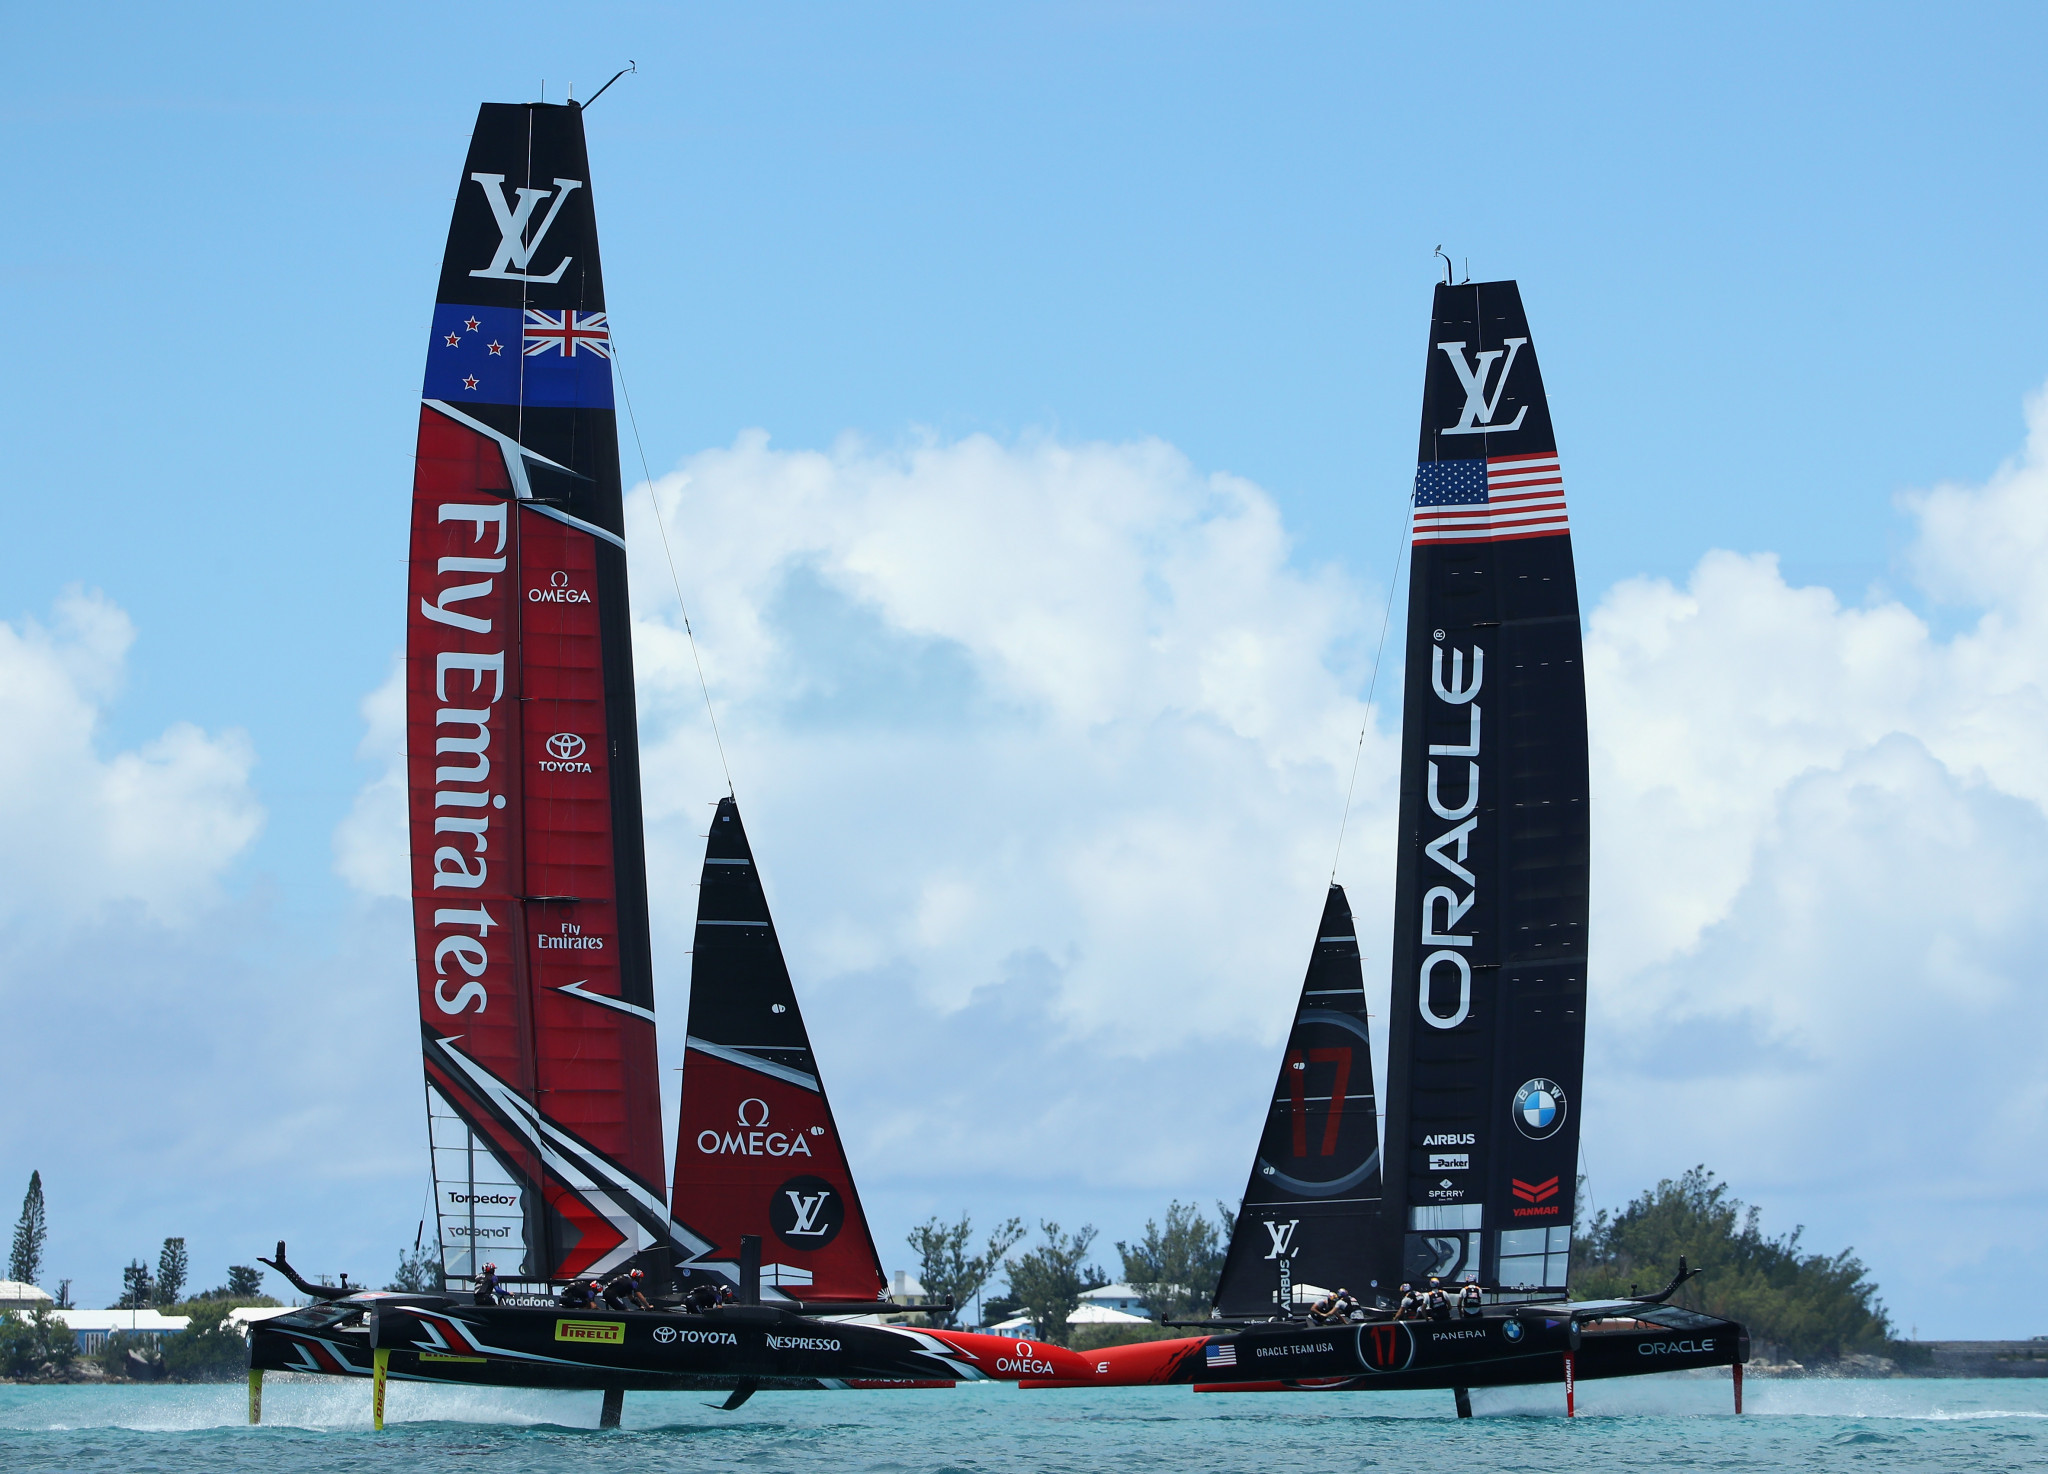 The 2021 America's Cup is to go ahead as planned next March, despite the coronavirus crisis, according to organisers ©Getty Images